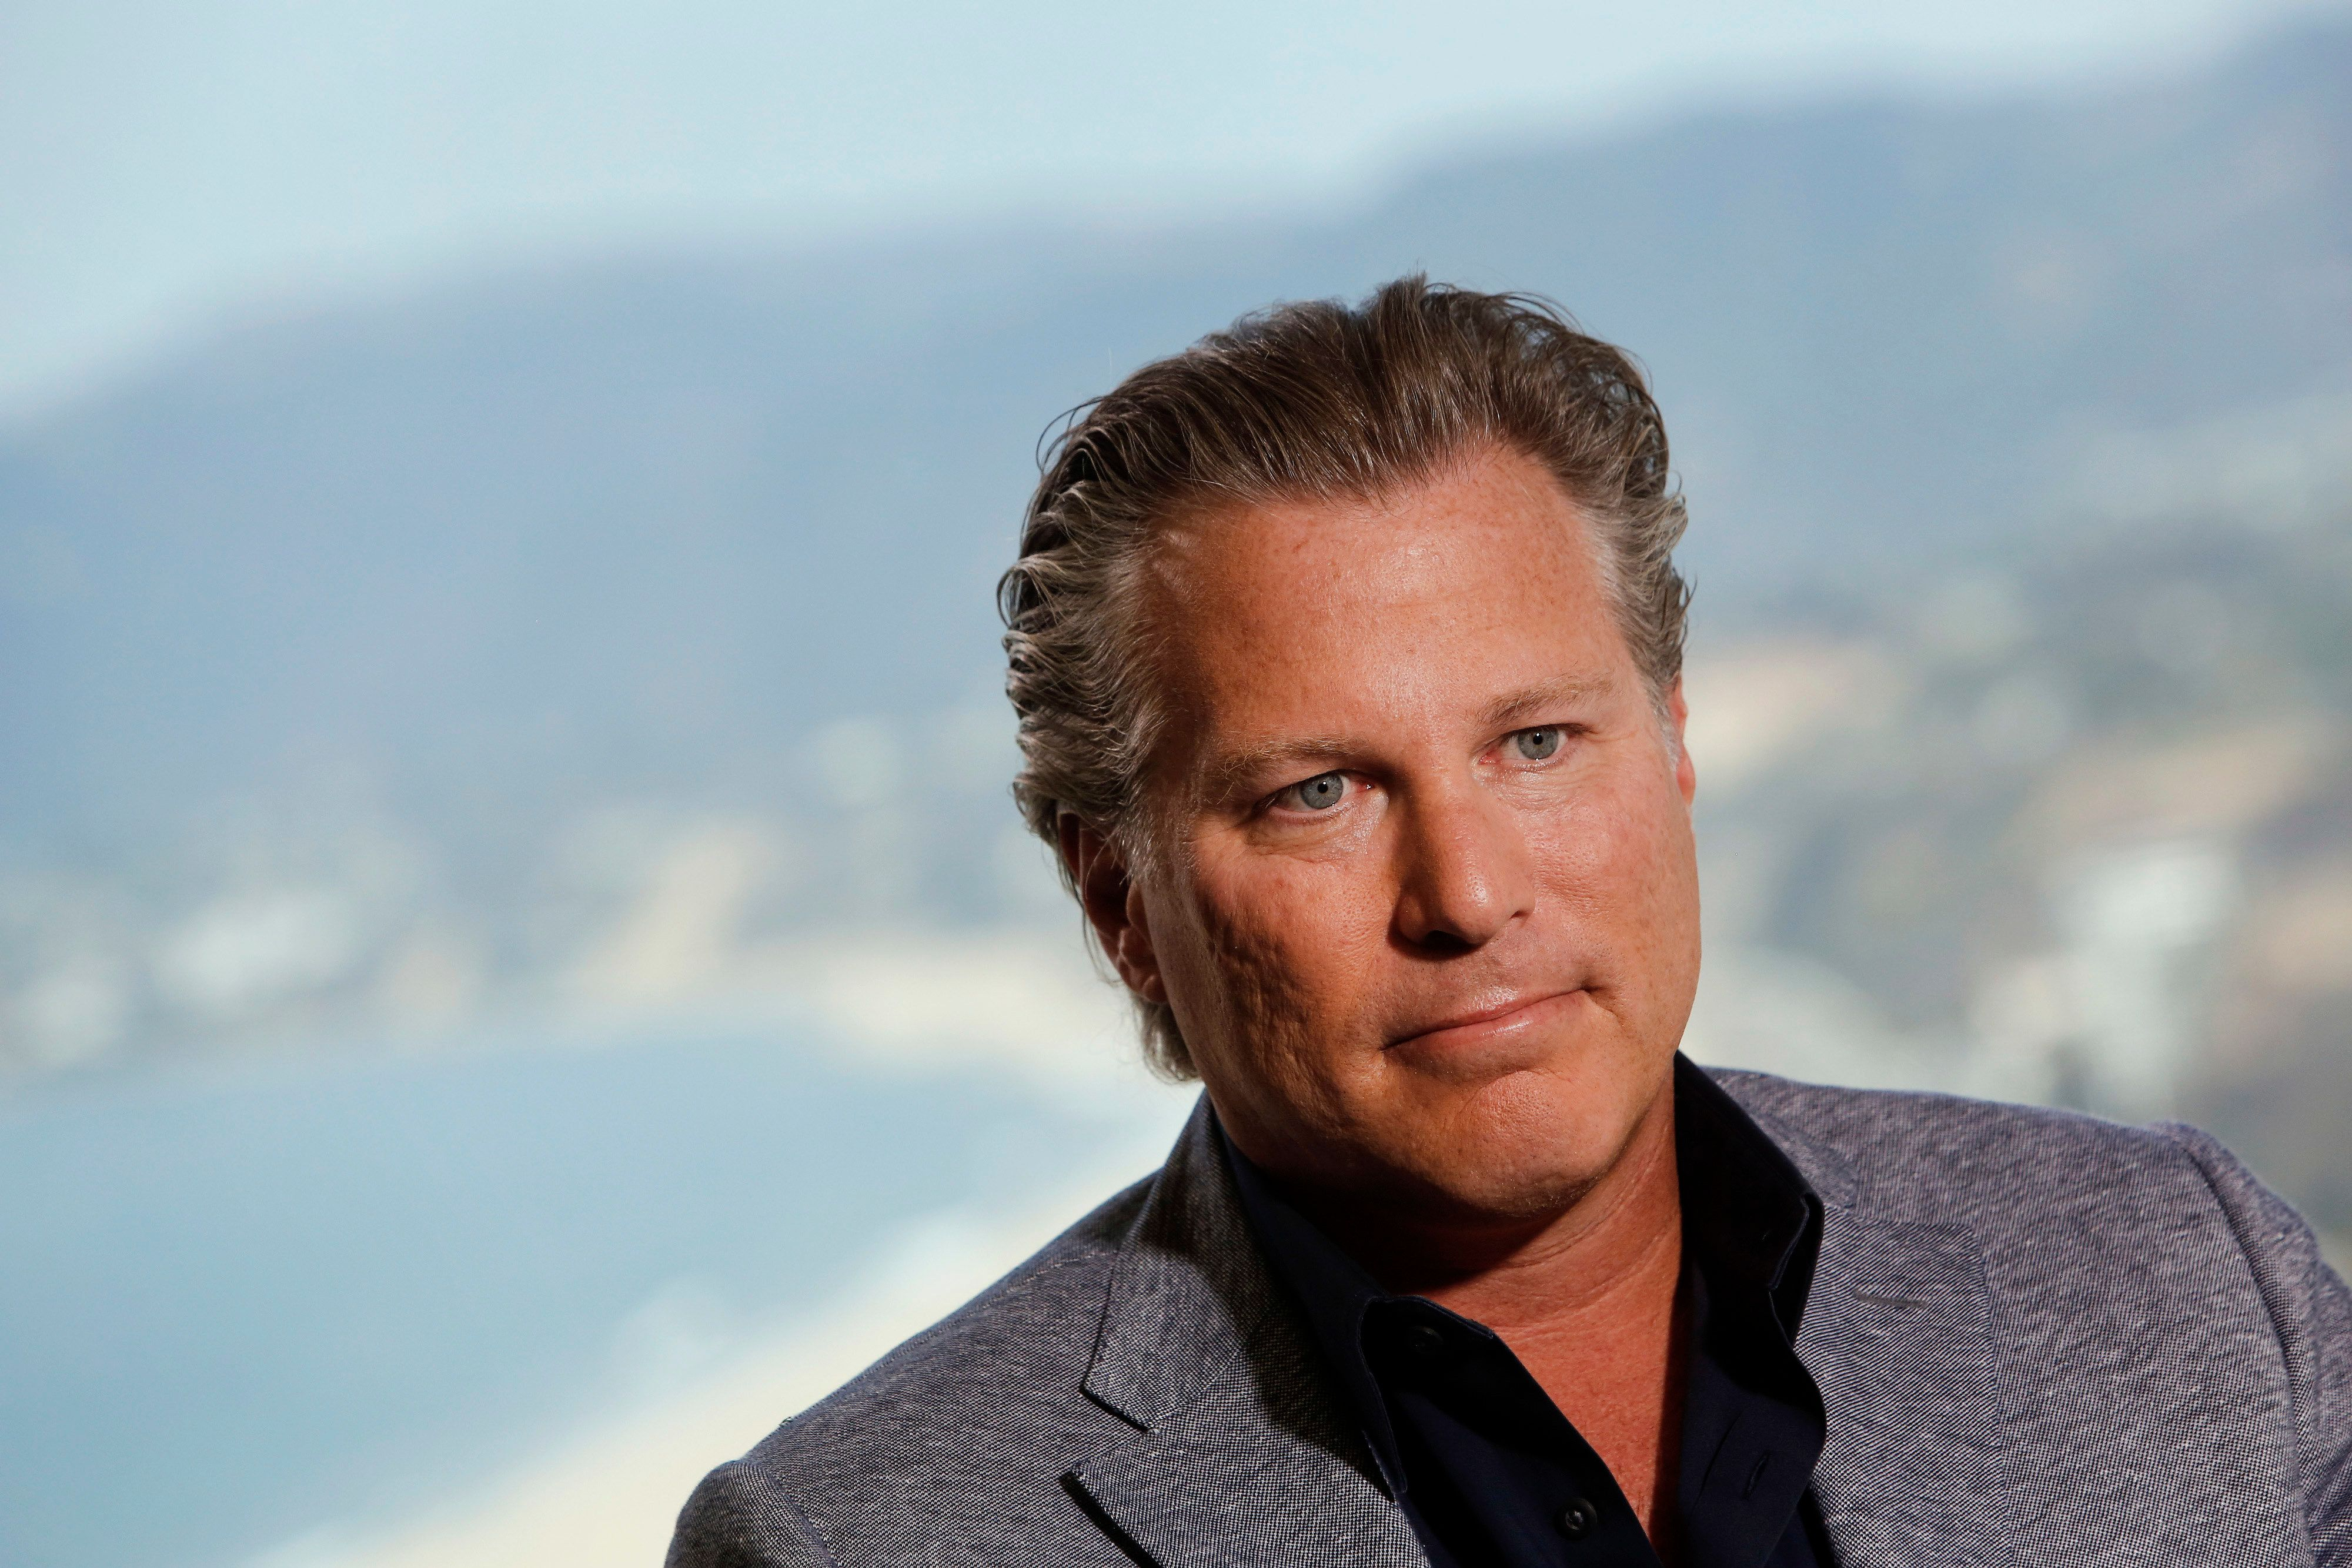 Ross Levinsohn will return to Tronc with the title of CEO of Tribune Interactive, a newly formed digital arm of the company.